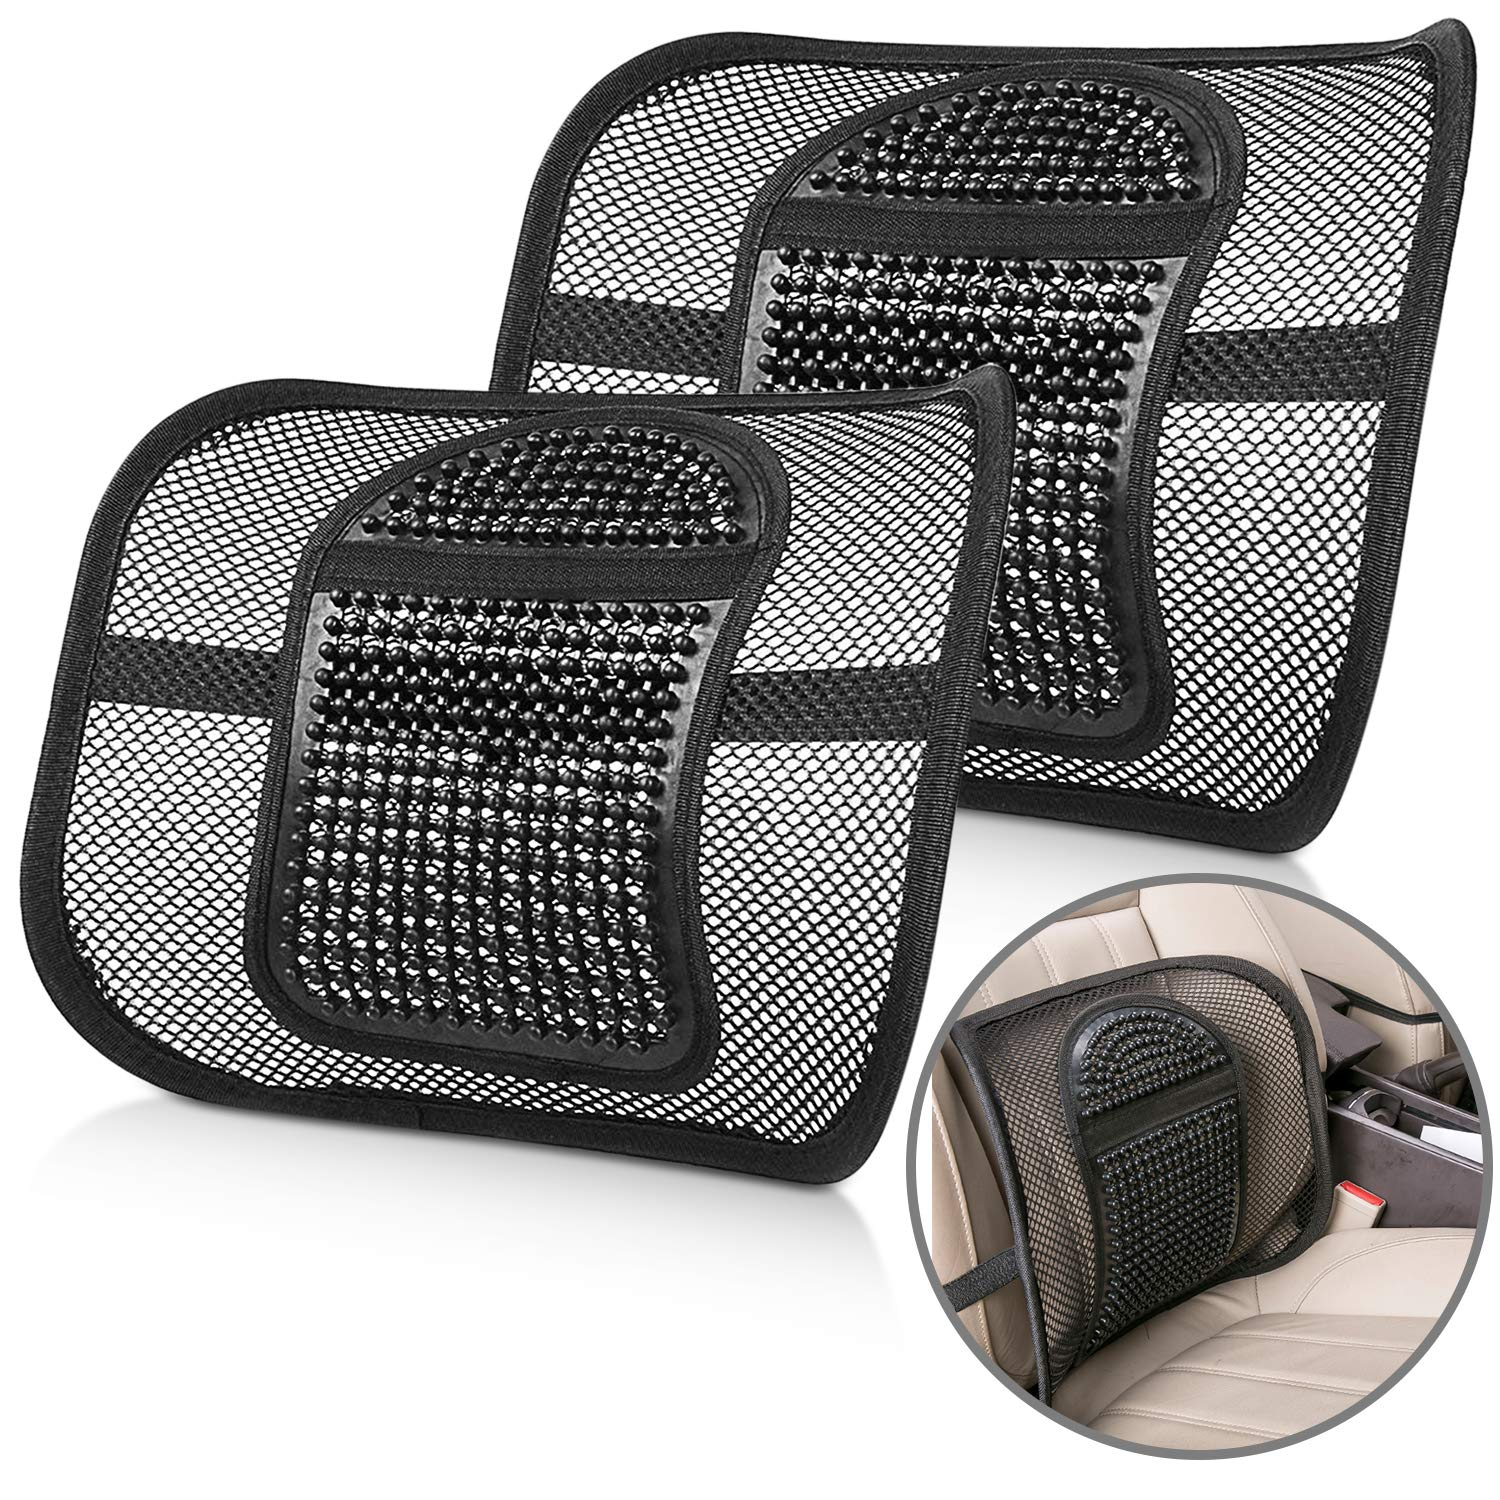 Back Lumbar Support Seat Cushion,Premium Quality Back Support pad with Elasticated Positioning Strap and Mesh Lumbar Massage- Relieve Back Pain Waist Support Magicfun